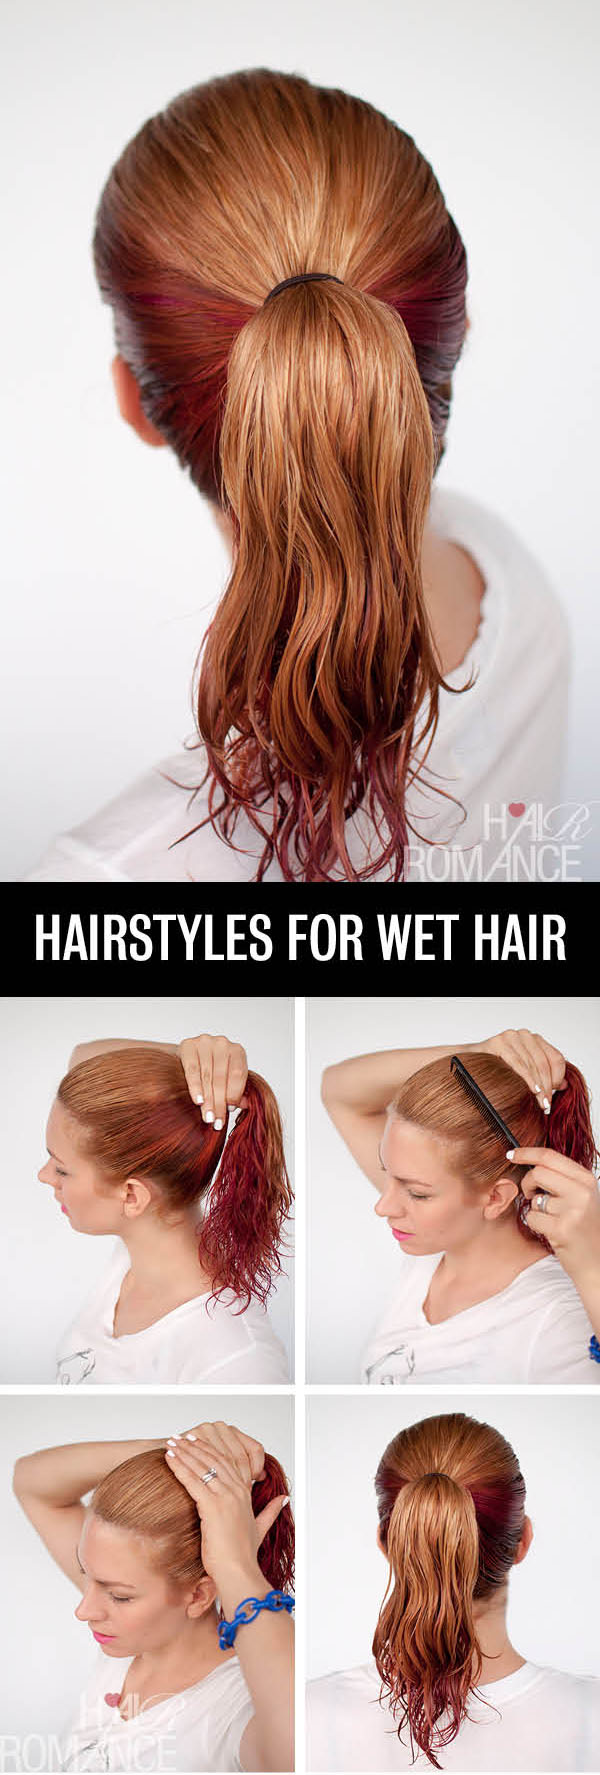 Hair Romance - Hairstyle tutorials for wet hair - the high ponytail